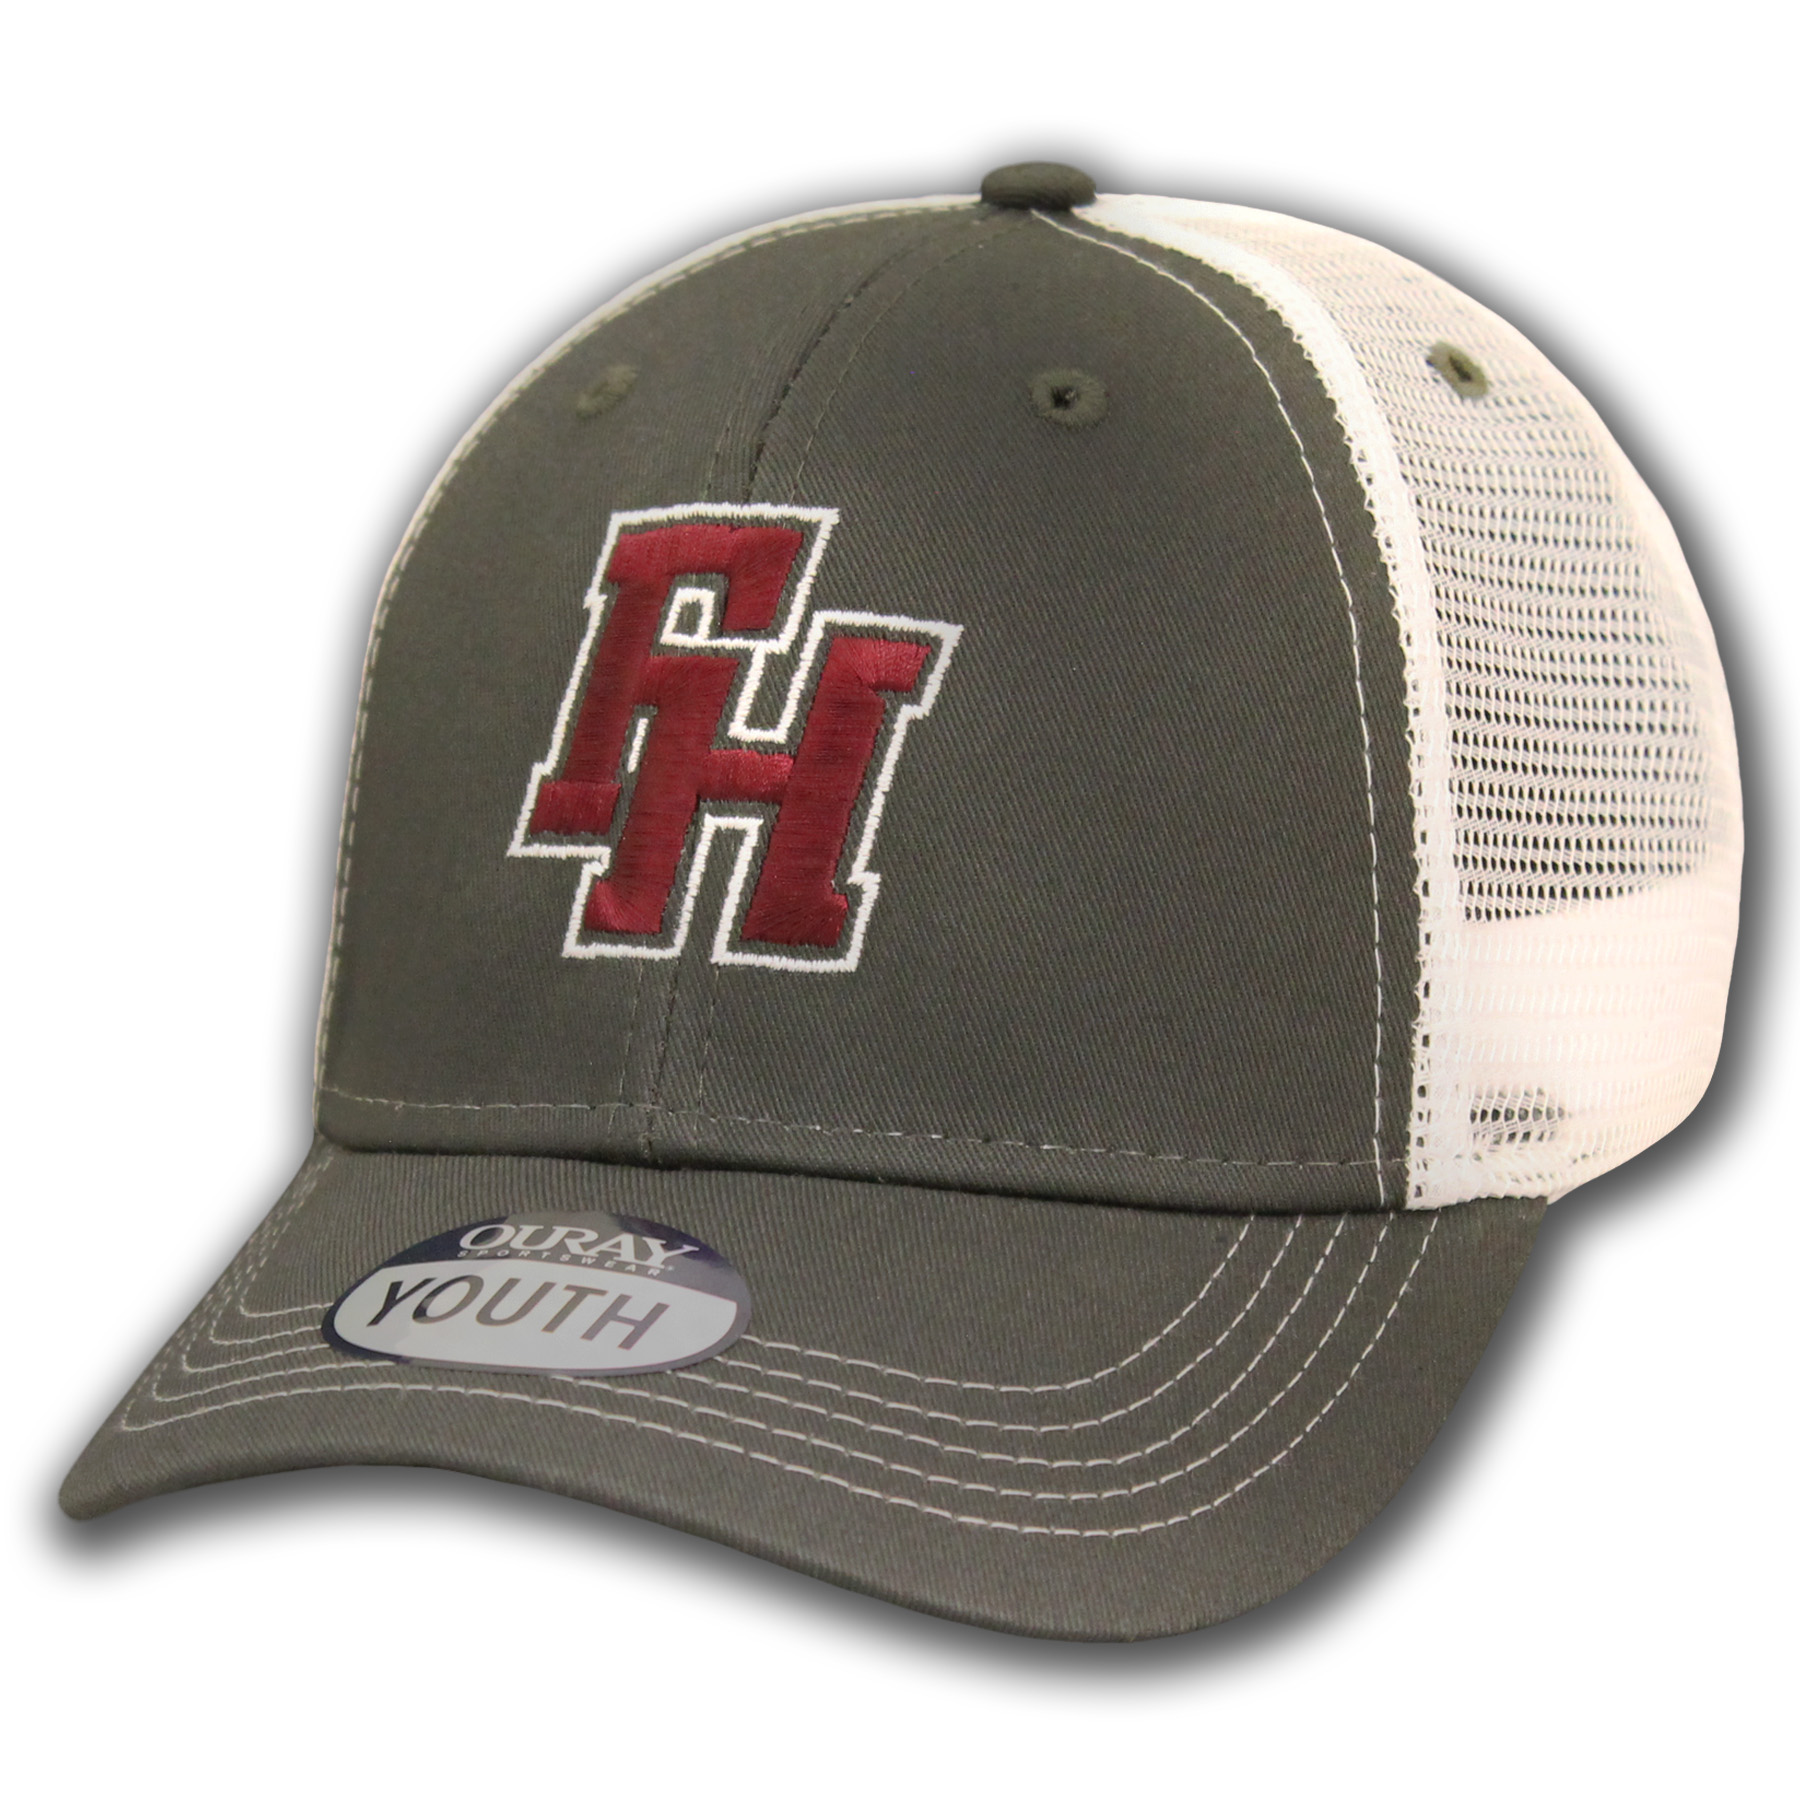 Youth FH Sideline Cap